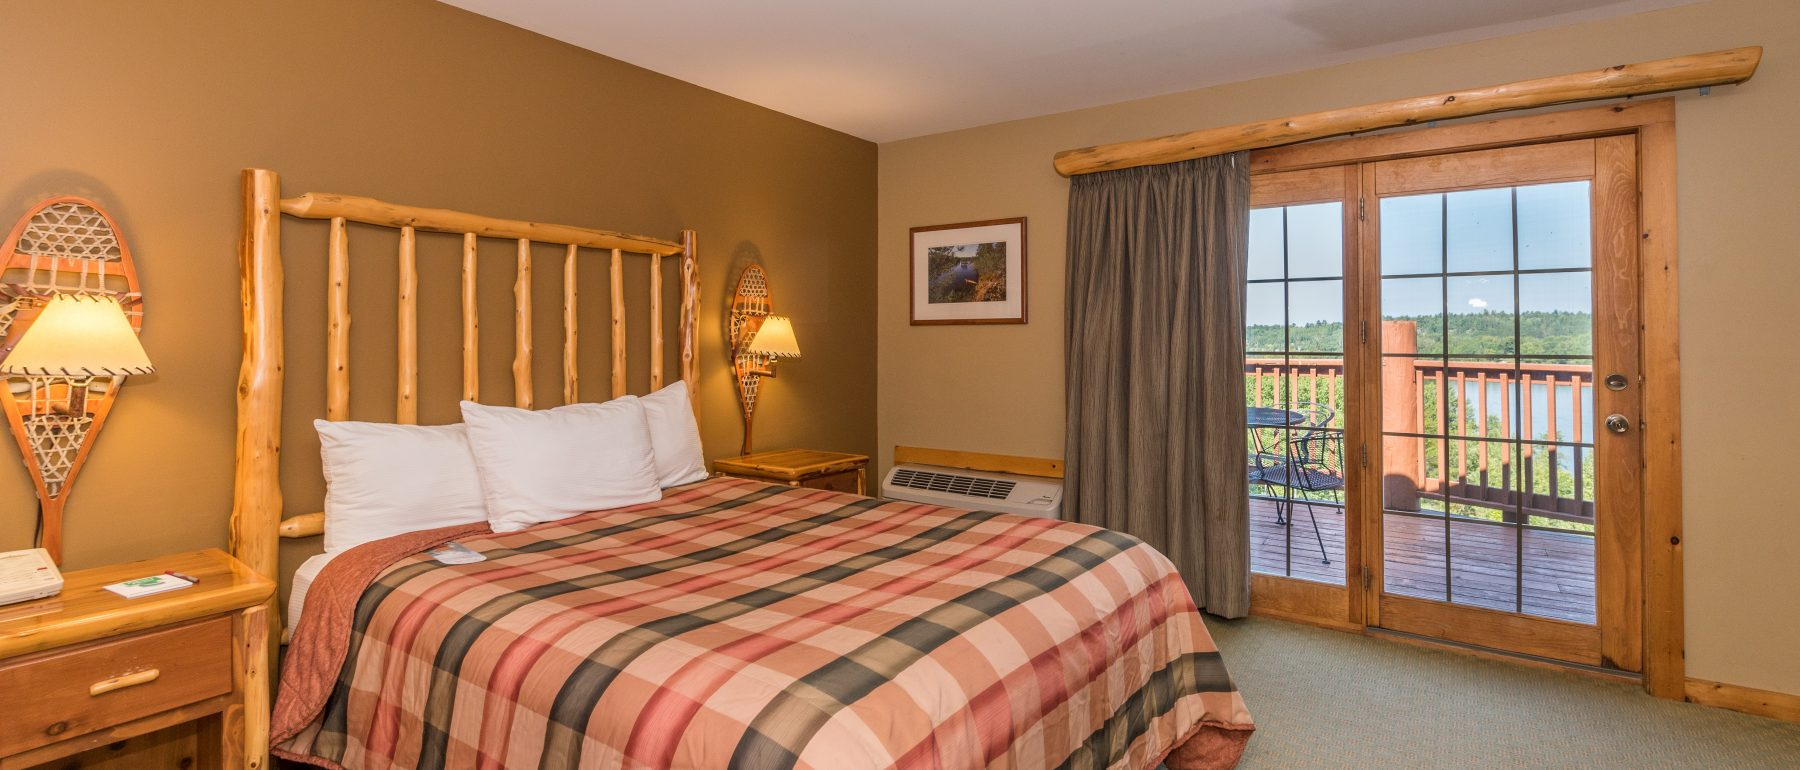 Two-Room Suite With Deck & Sofa Sleeper at Grand Ely Lodge